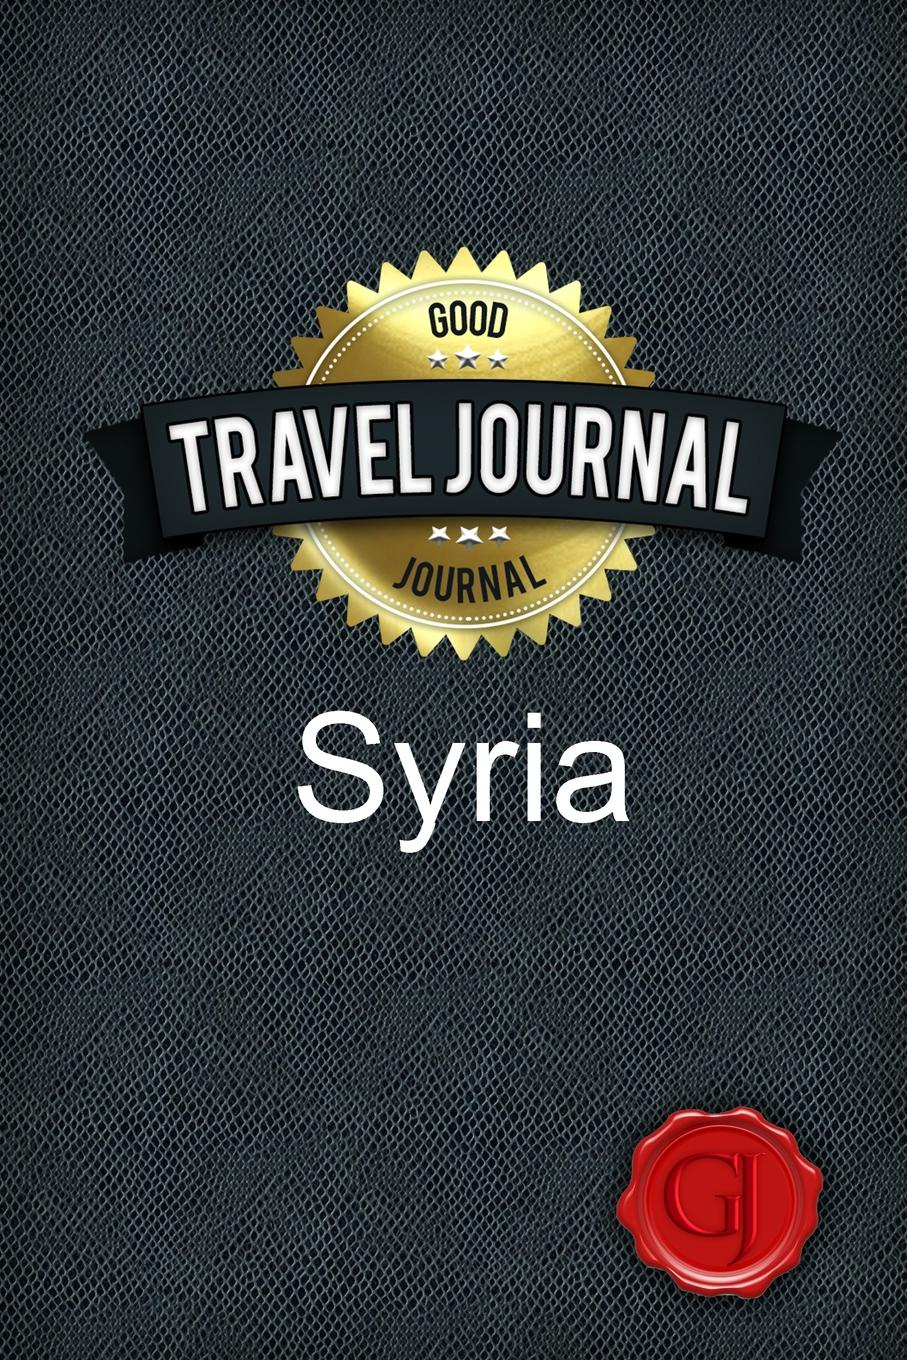 Good Journal Travel Journal Syria